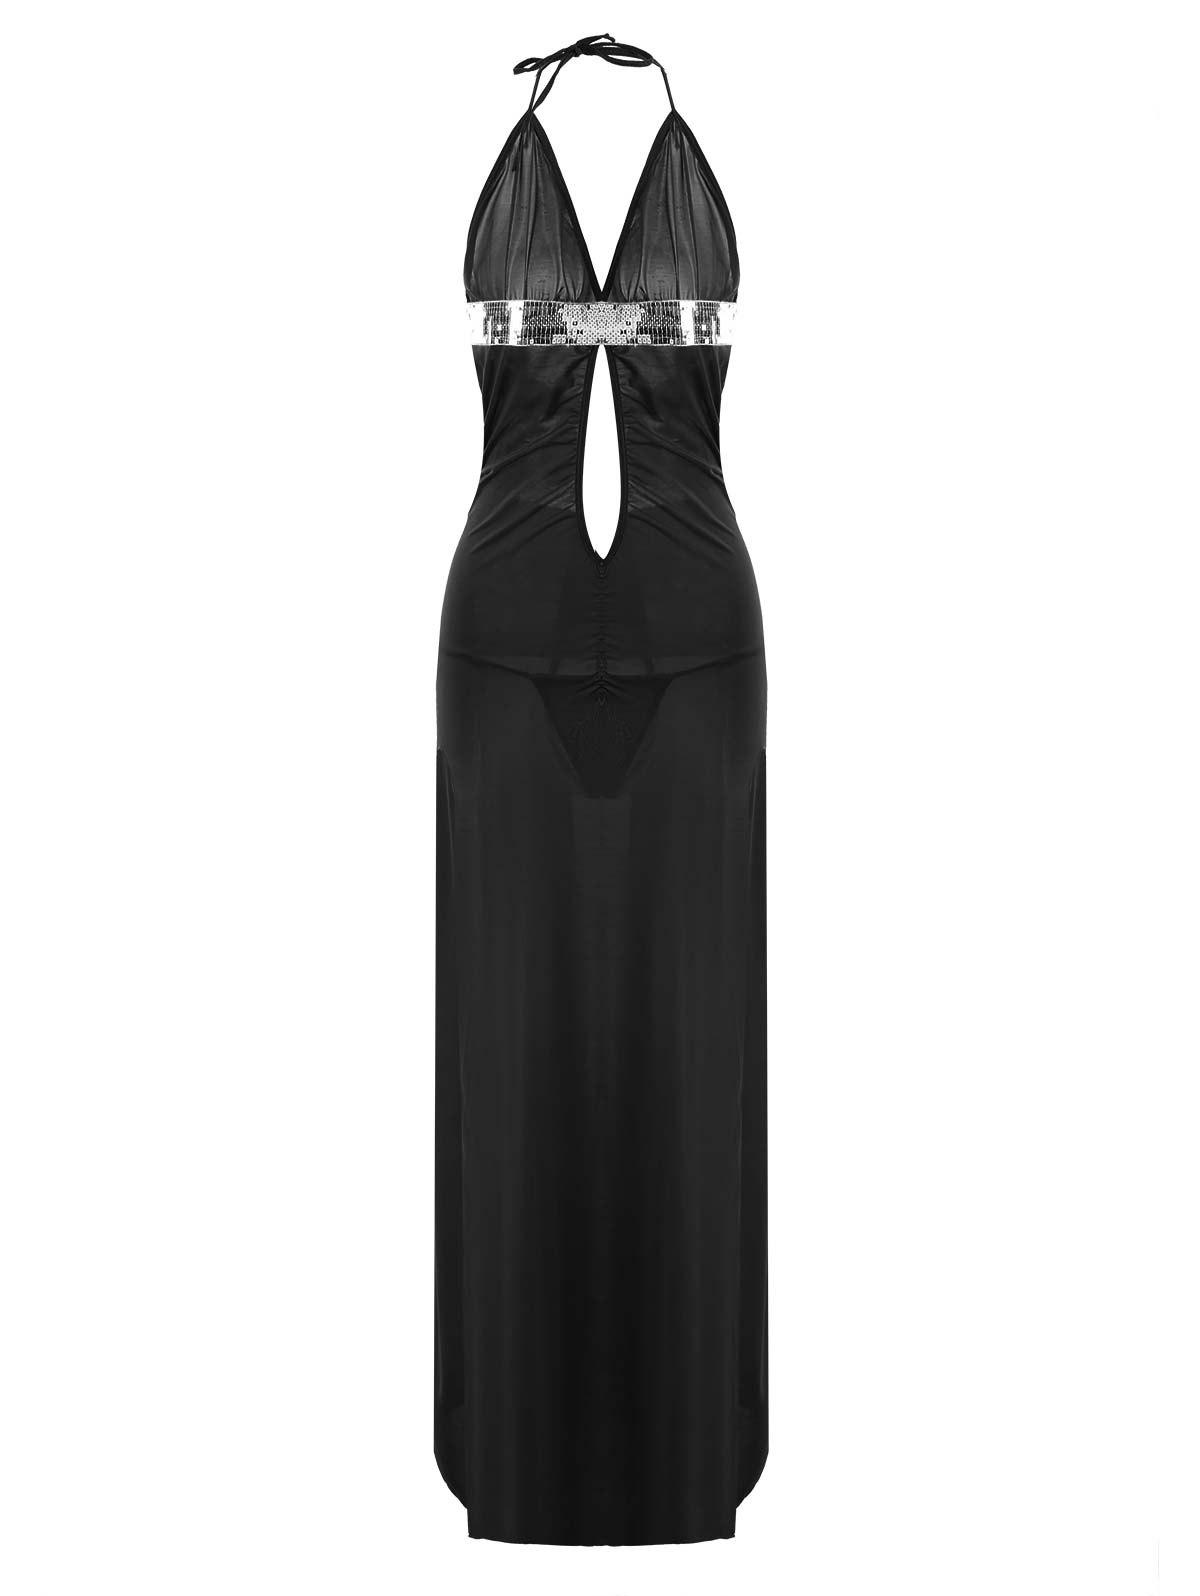 Maxi High Slit Plunge Lingerie Dress - Noir L